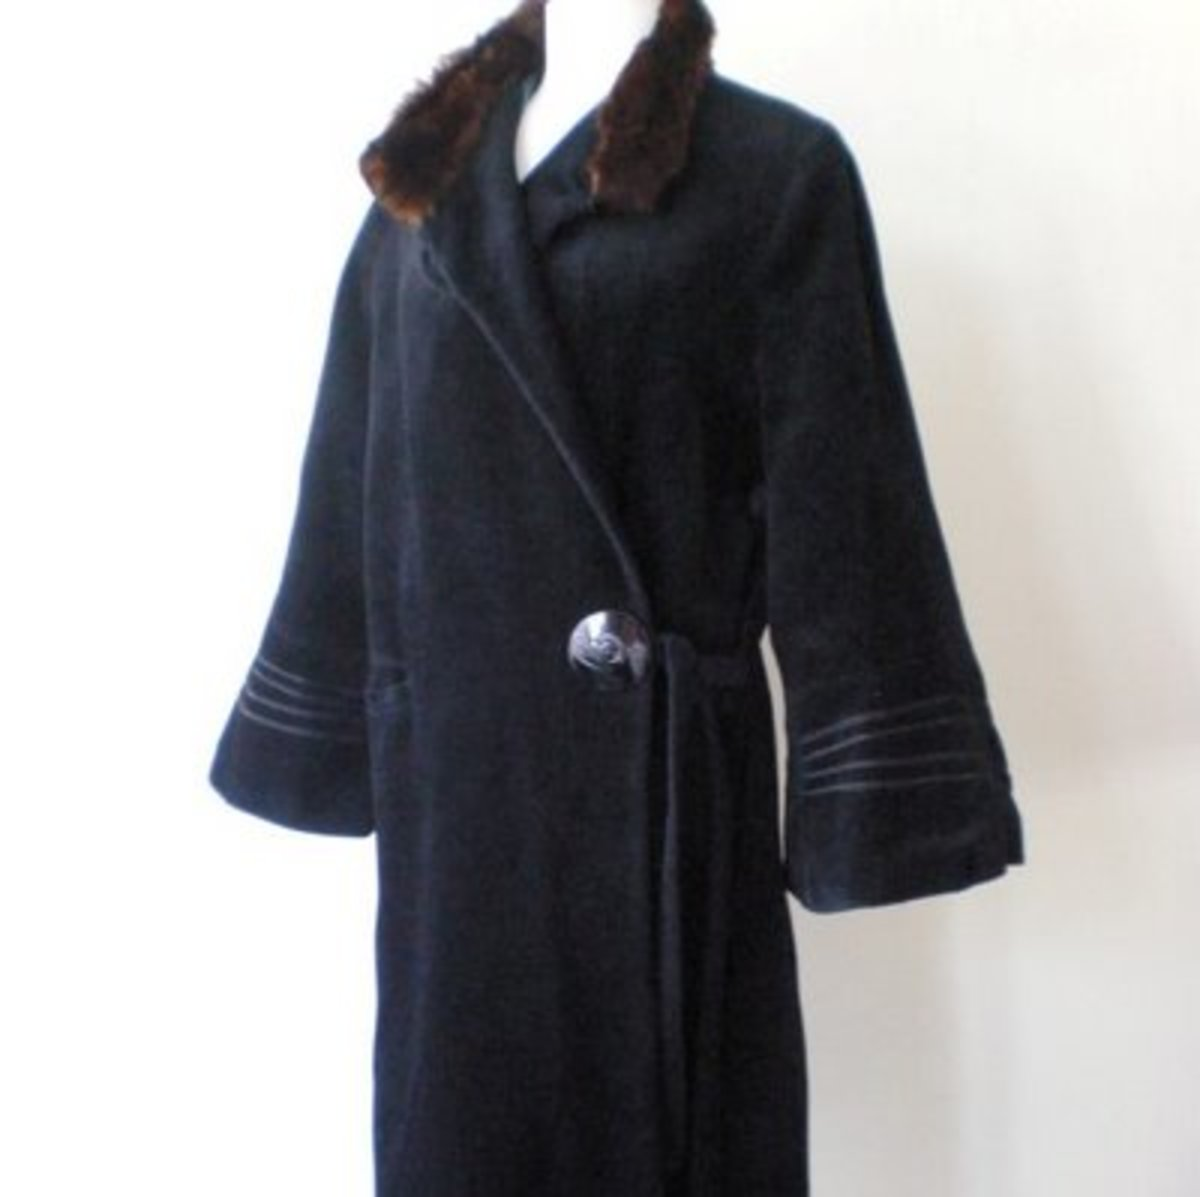 Typical 20's coat